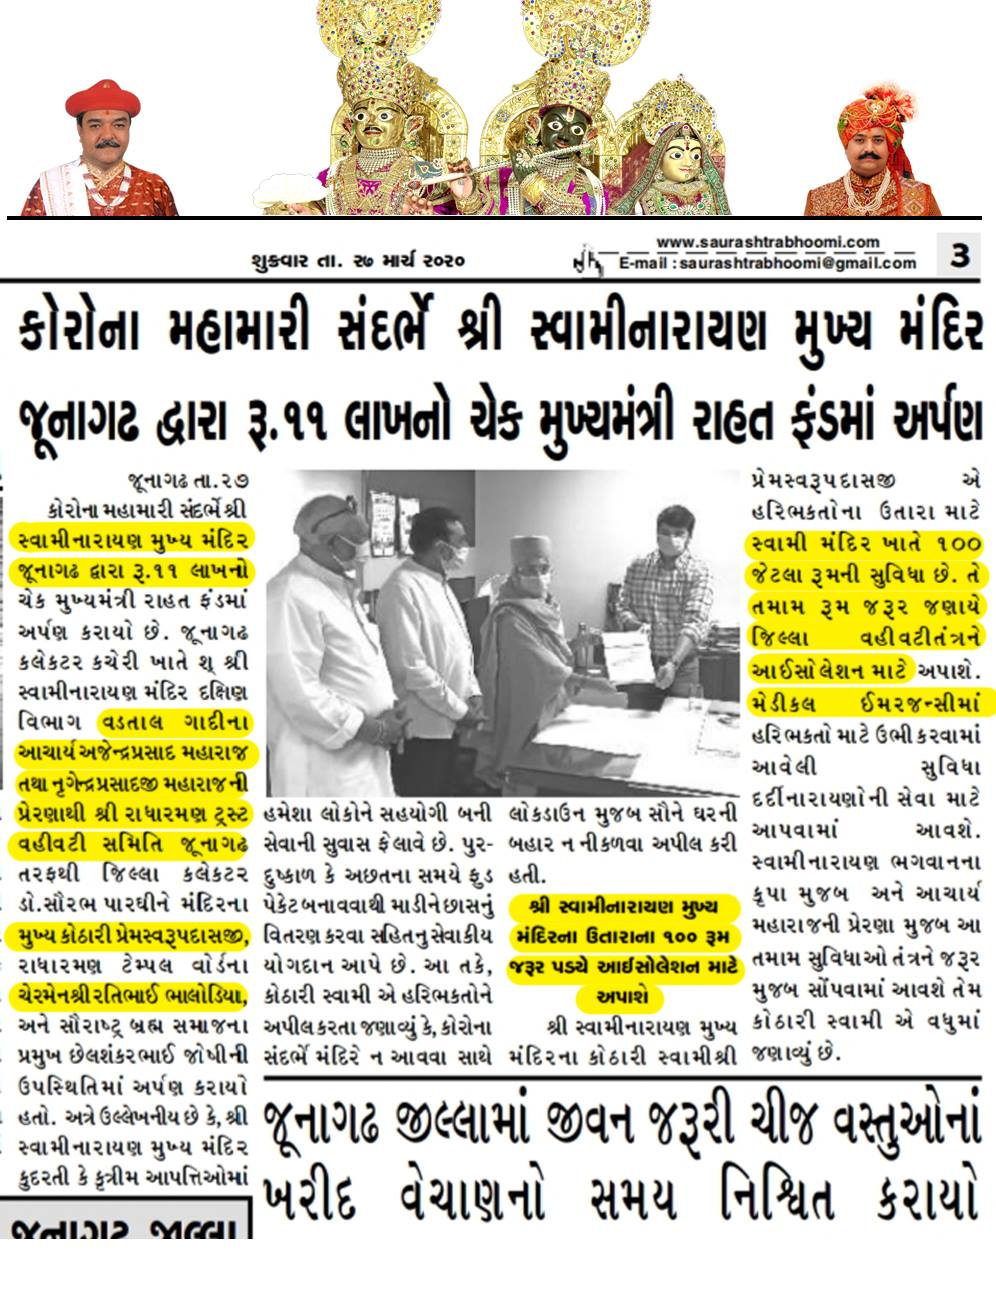 Swaminarayan Mandir Junagadh has contributed Rs. 11 lakh in the Chief Minister Relief Fund. for Covid 19 relief work was deposited